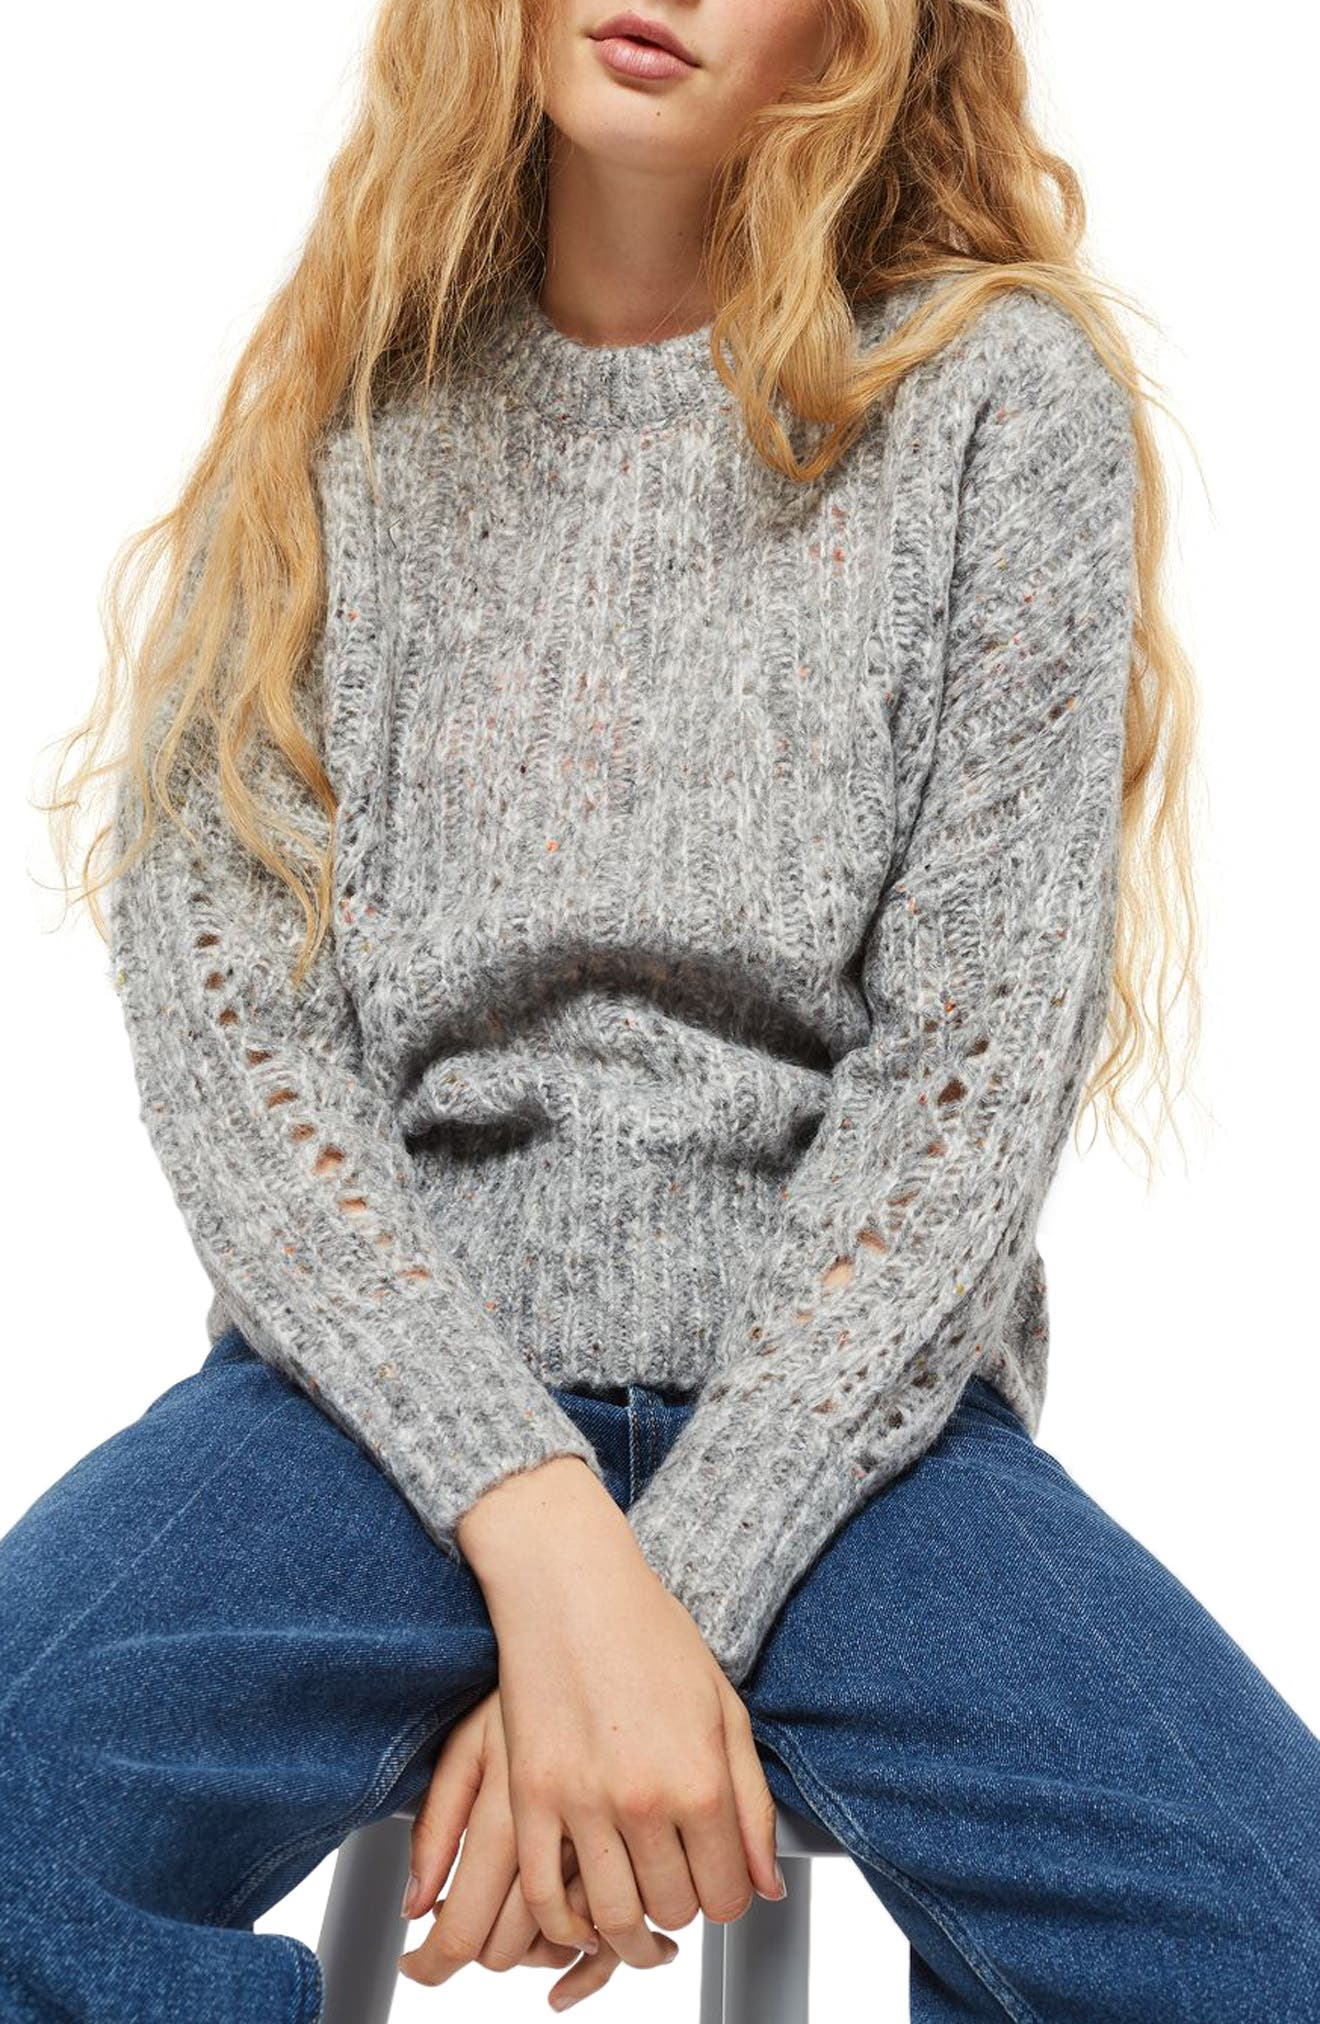 Soft Nep Sweater,                             Main thumbnail 1, color,                             Grey Marl Multi